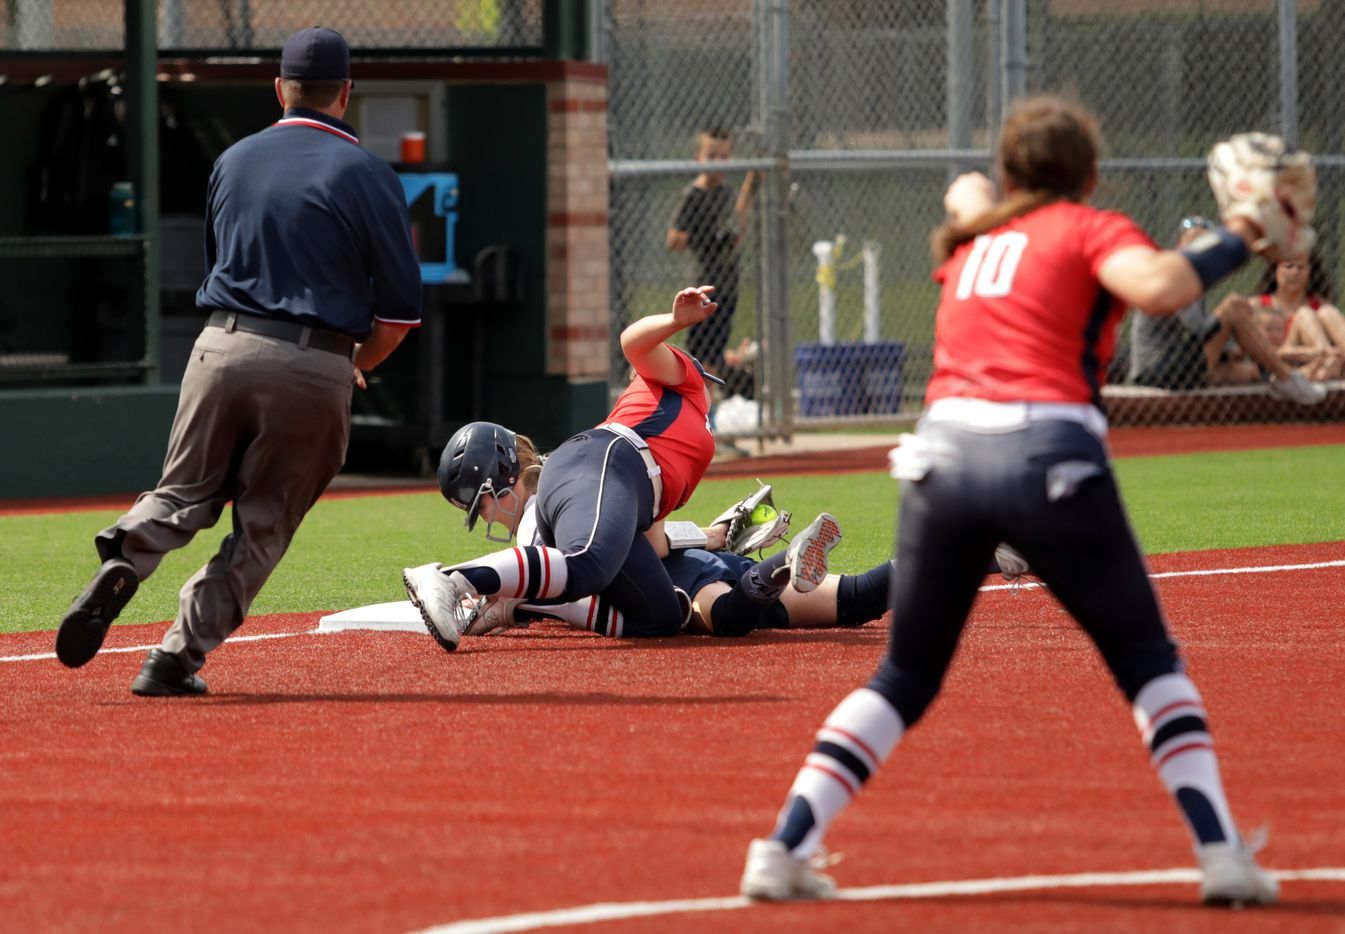 Flower Mound High School player #6, McKenna Andrews, slides into third base as Allen High School player #8, Taylor Wright, attempts to get her out during a softball playoff game at Allen High School in Allen, TX, on May 15, 2021. (Jason Janik/Special Contributor)